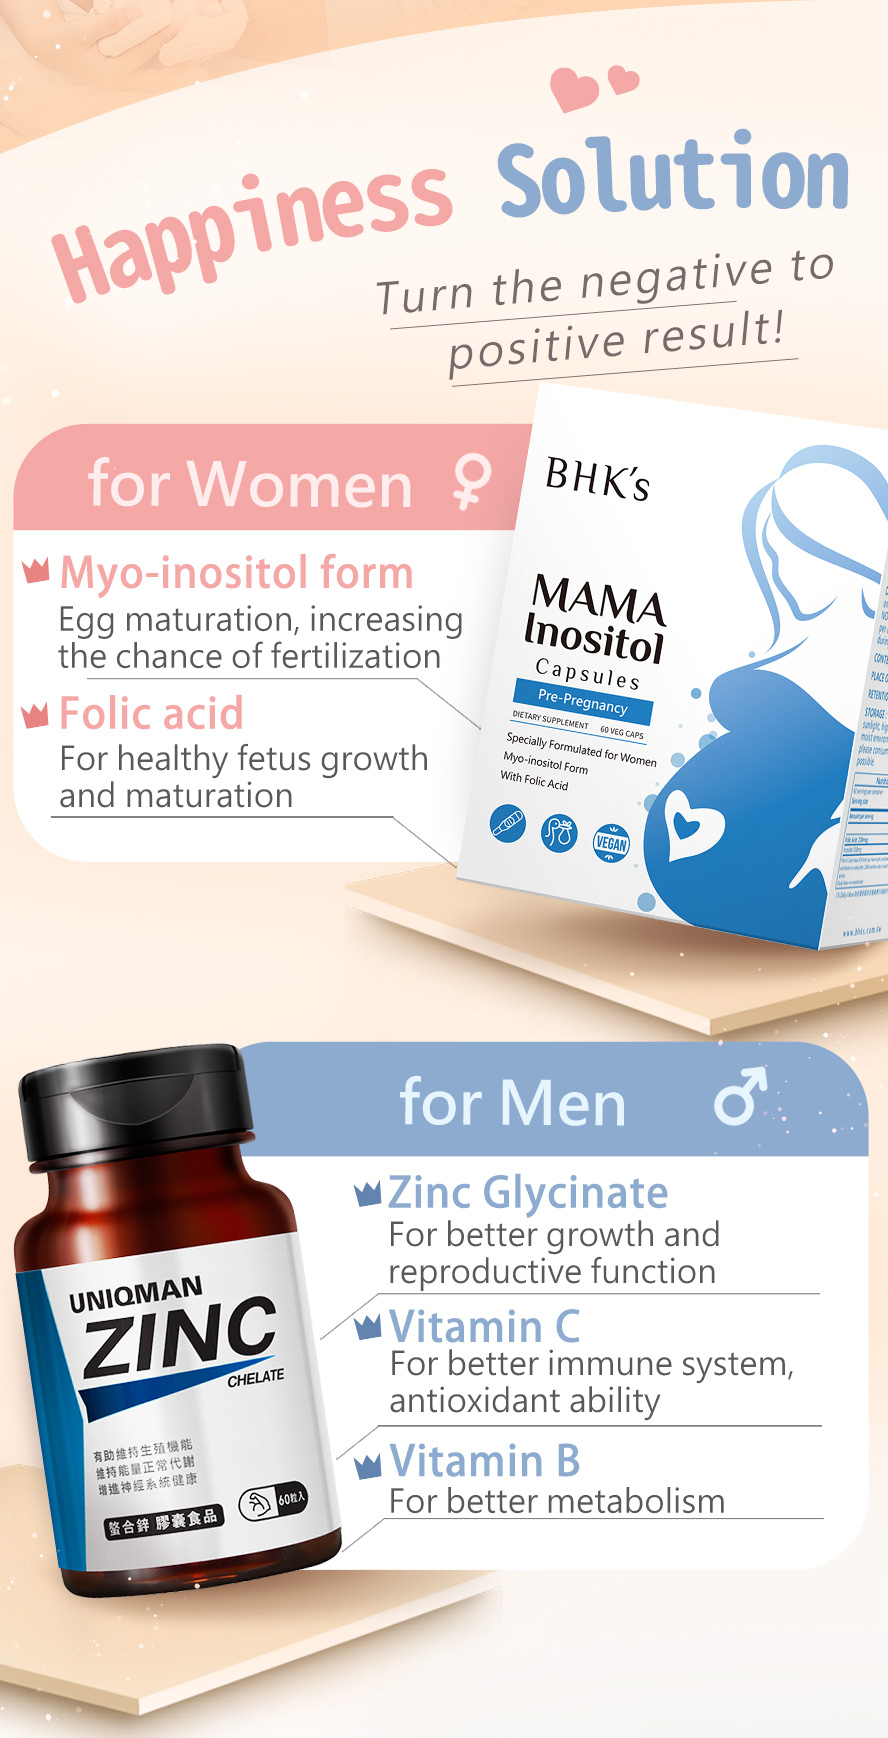 BHKs Inositol improves the function of the ovaries and fertility in women. Chelated Zinc increases semen quality in men.